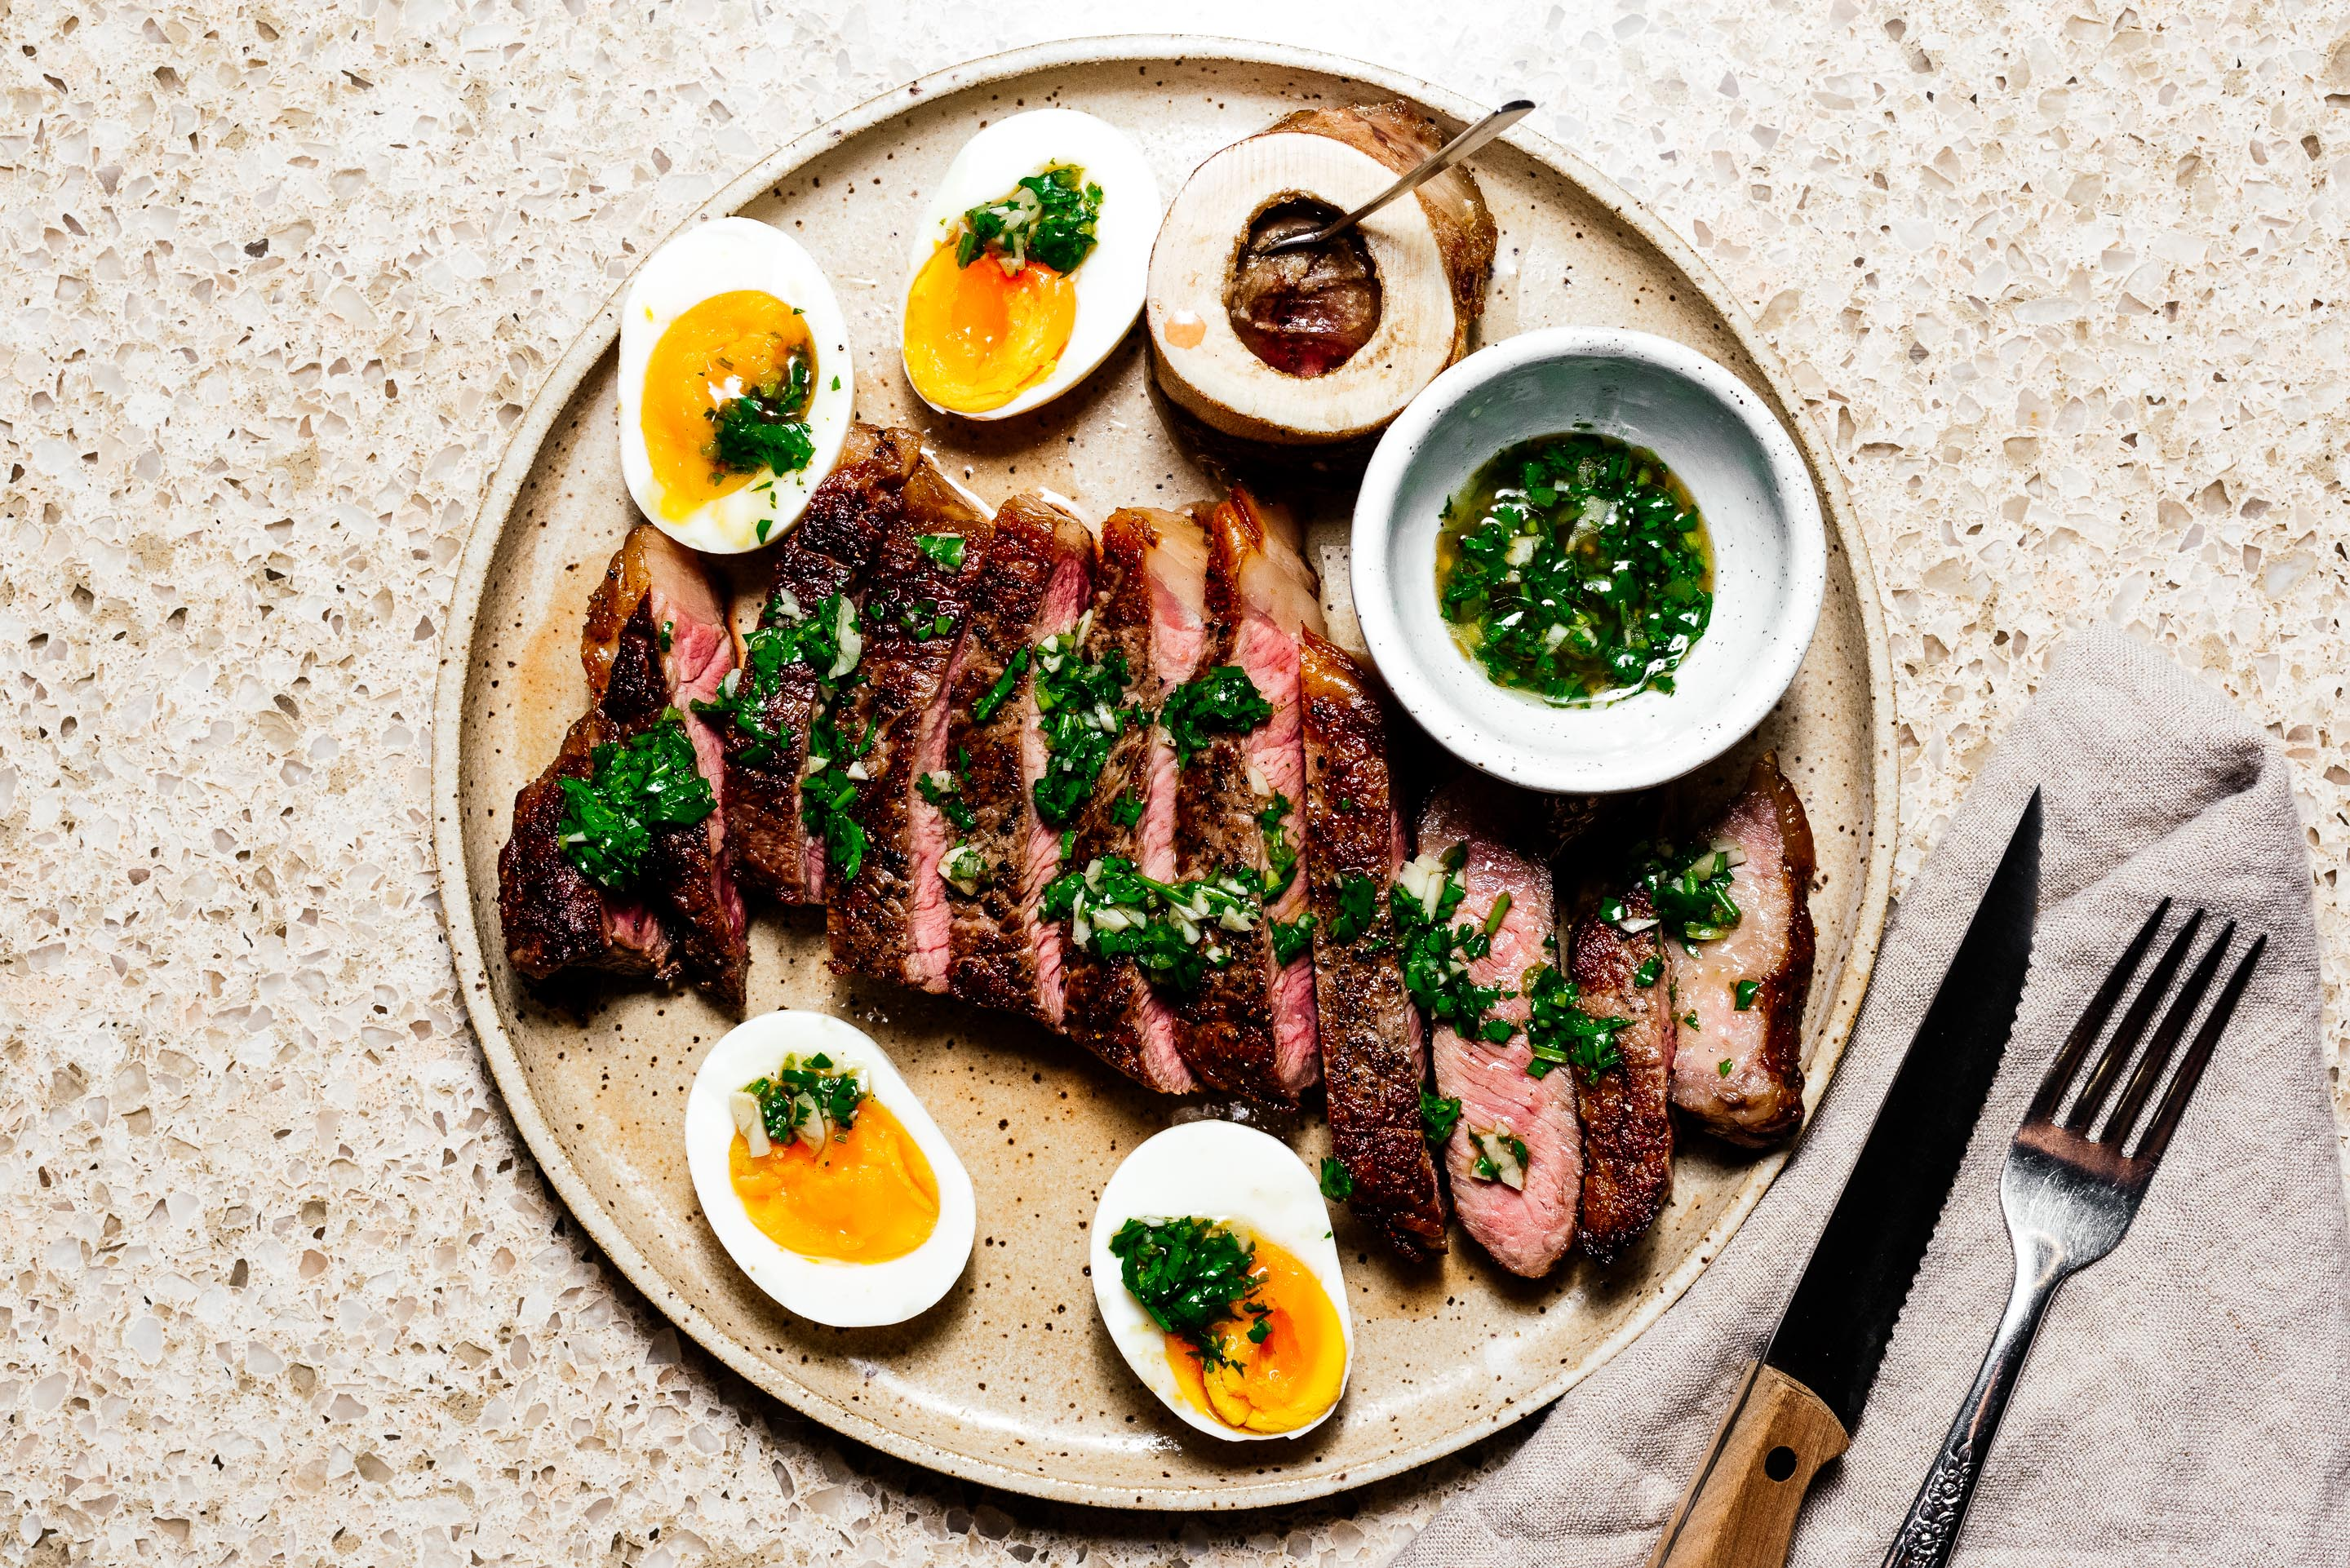 Oven roasted steak with Japanese chimichurri, roasted bone marrow, and jammy eggs